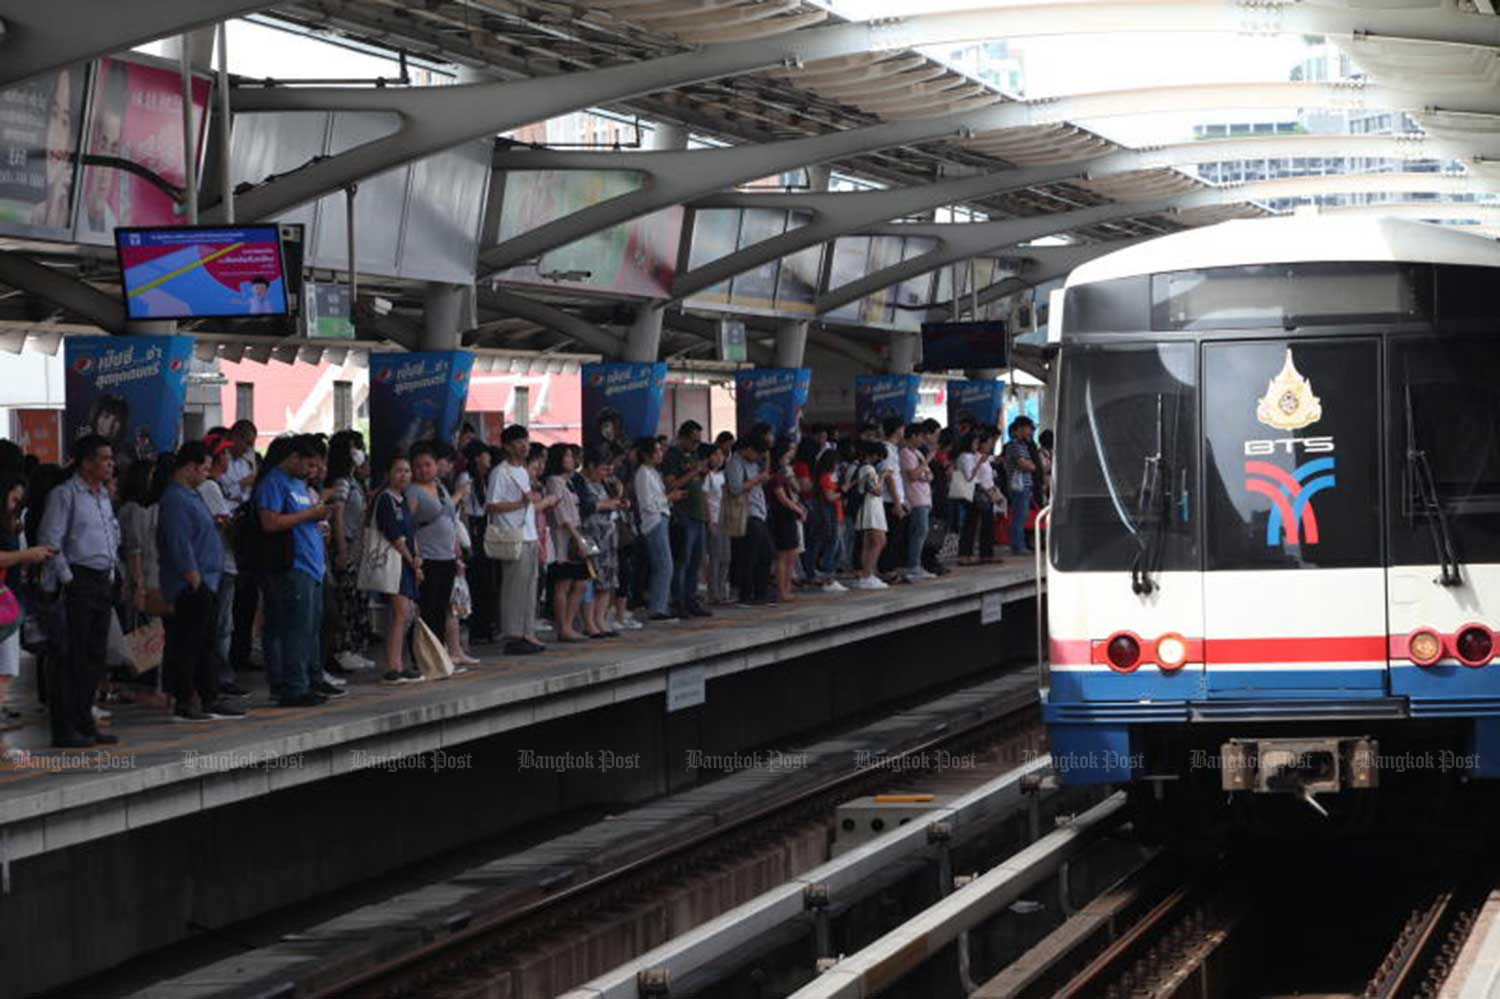 The BTS skytrain operator reports a net profit of 1.131 billion baht in the second quarter of 2019/20, up 36.3%.  (File photo)